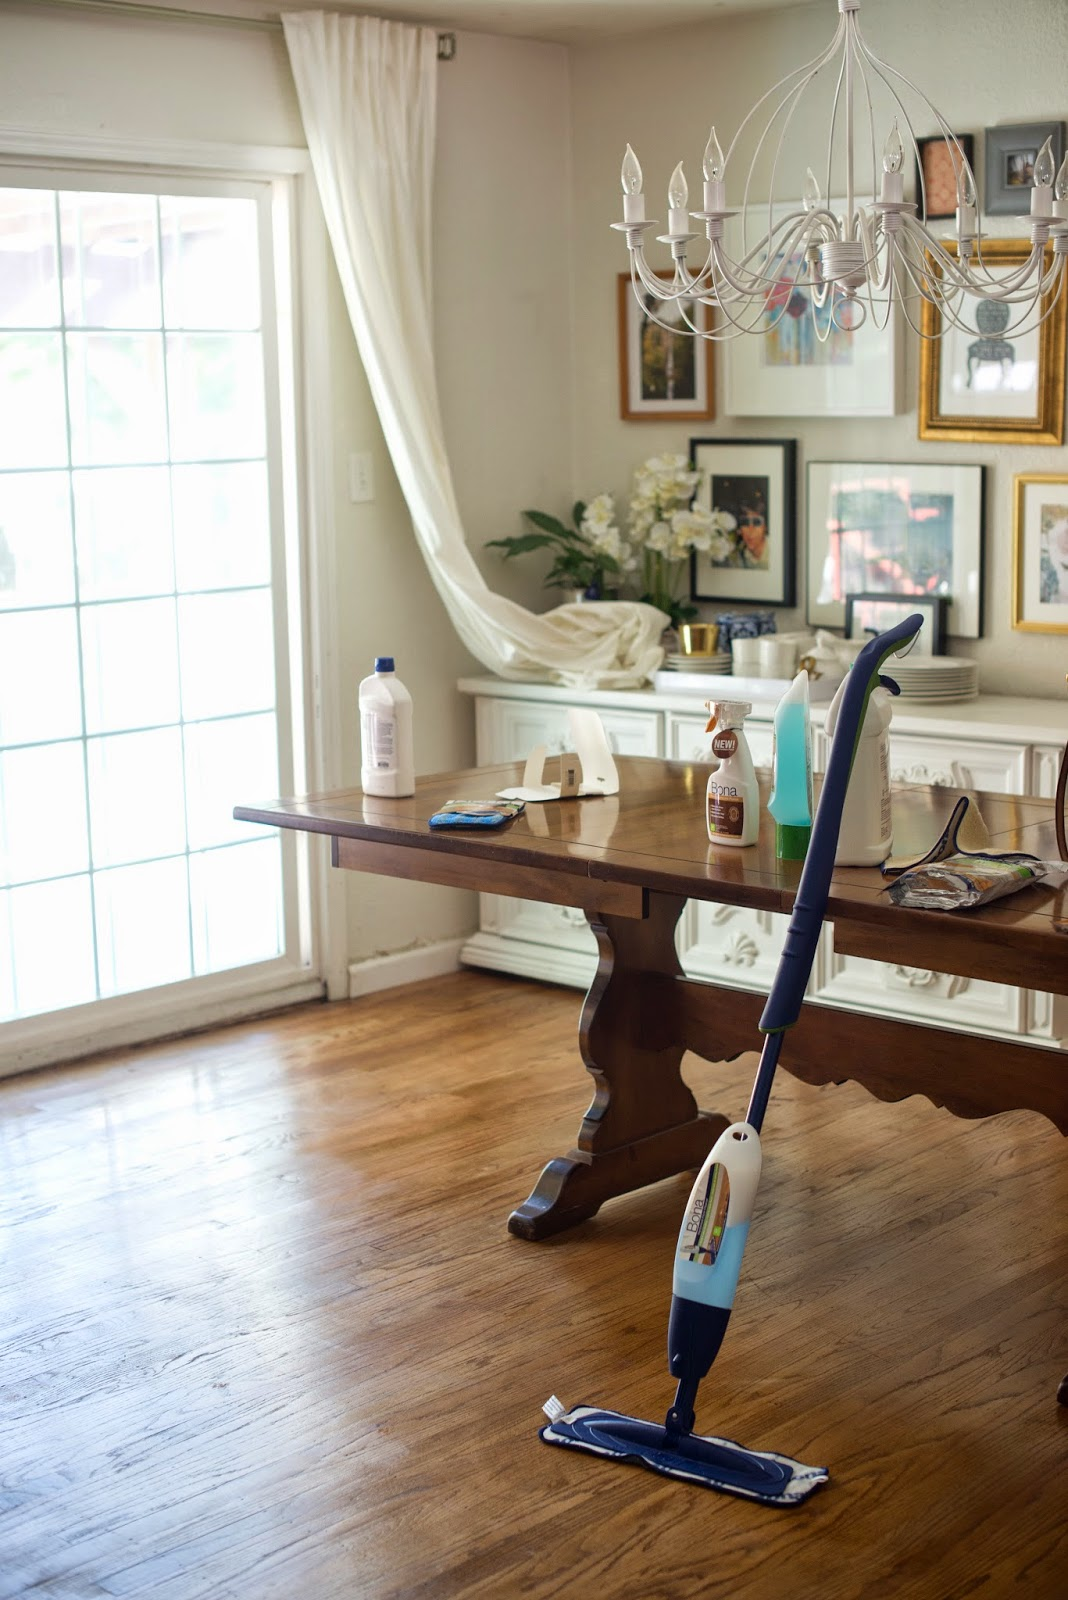 Hardwood Floor Care s w wood floors floor care Easy Hardwood Floor Care How To Clean And Protect Your Floors